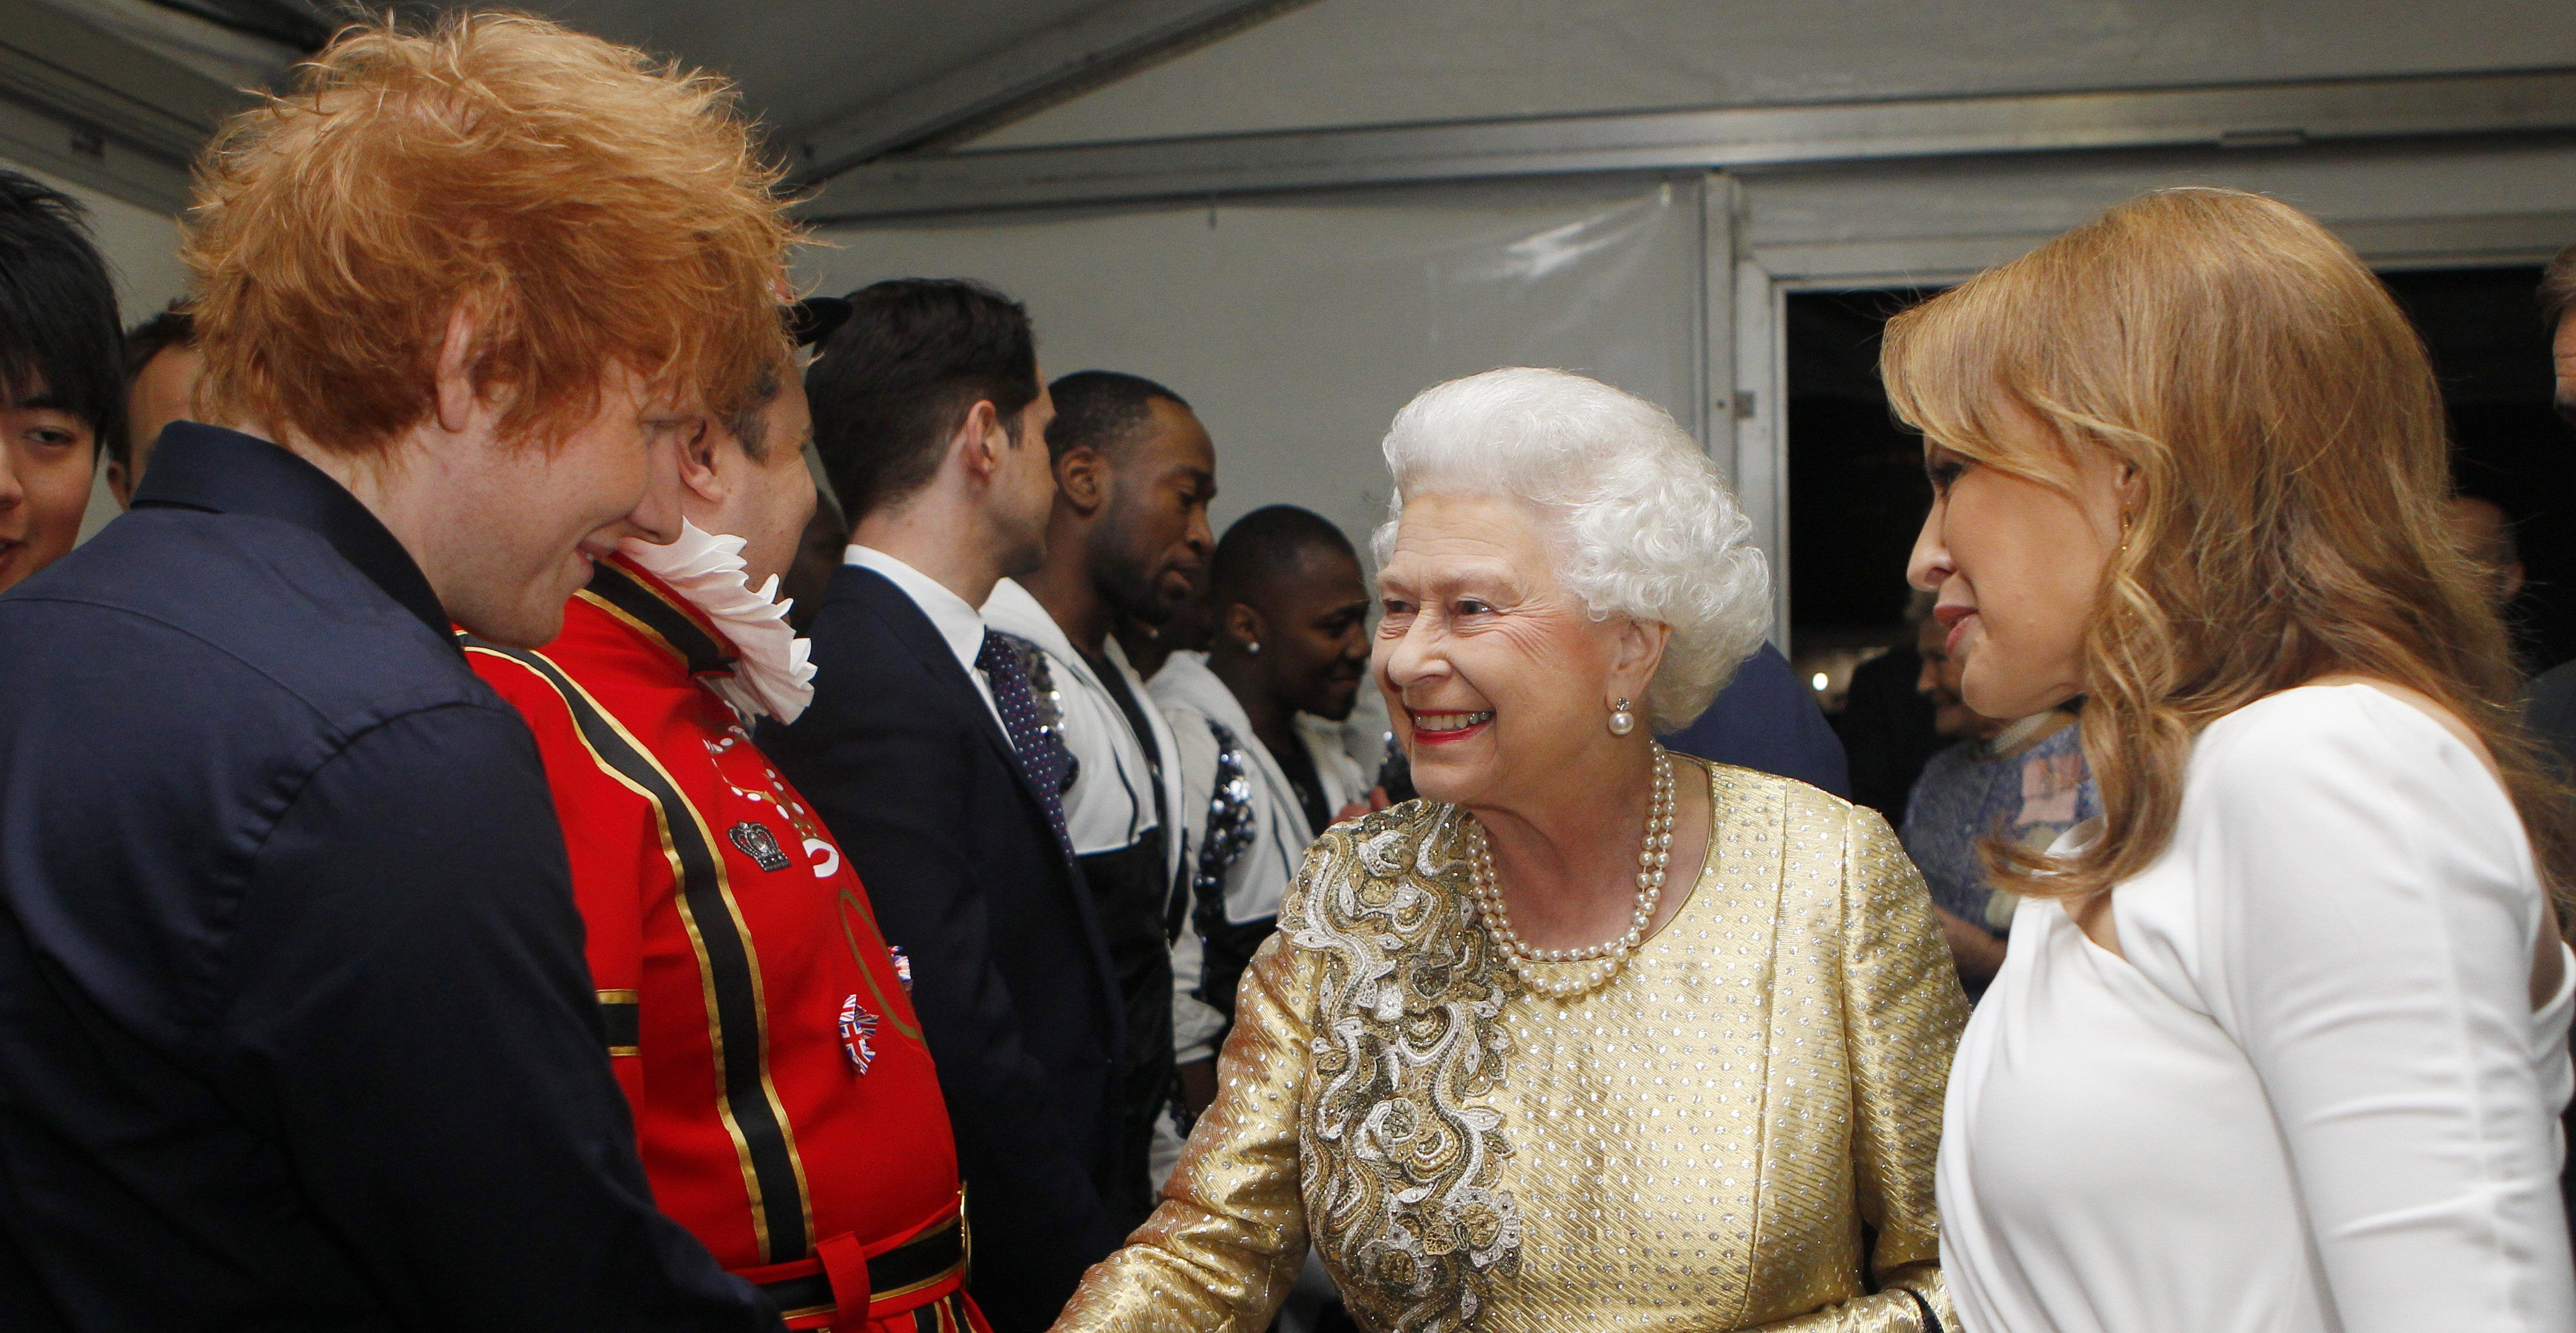 10 Musicians Who Performed In Front Of Royalty